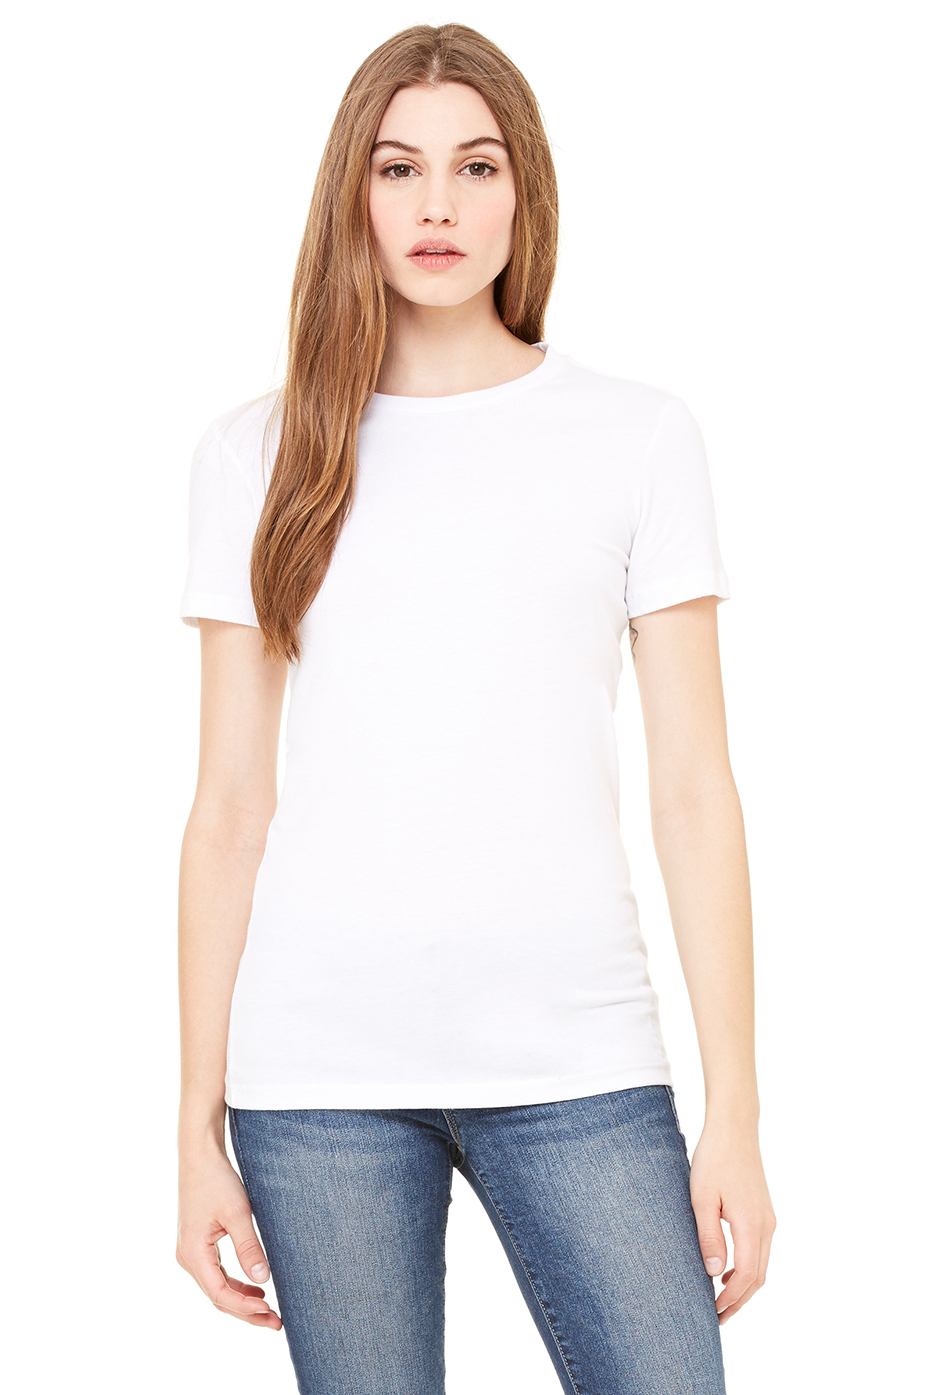 c71e6b5e15b25 6004 Women s The Favorite Tee